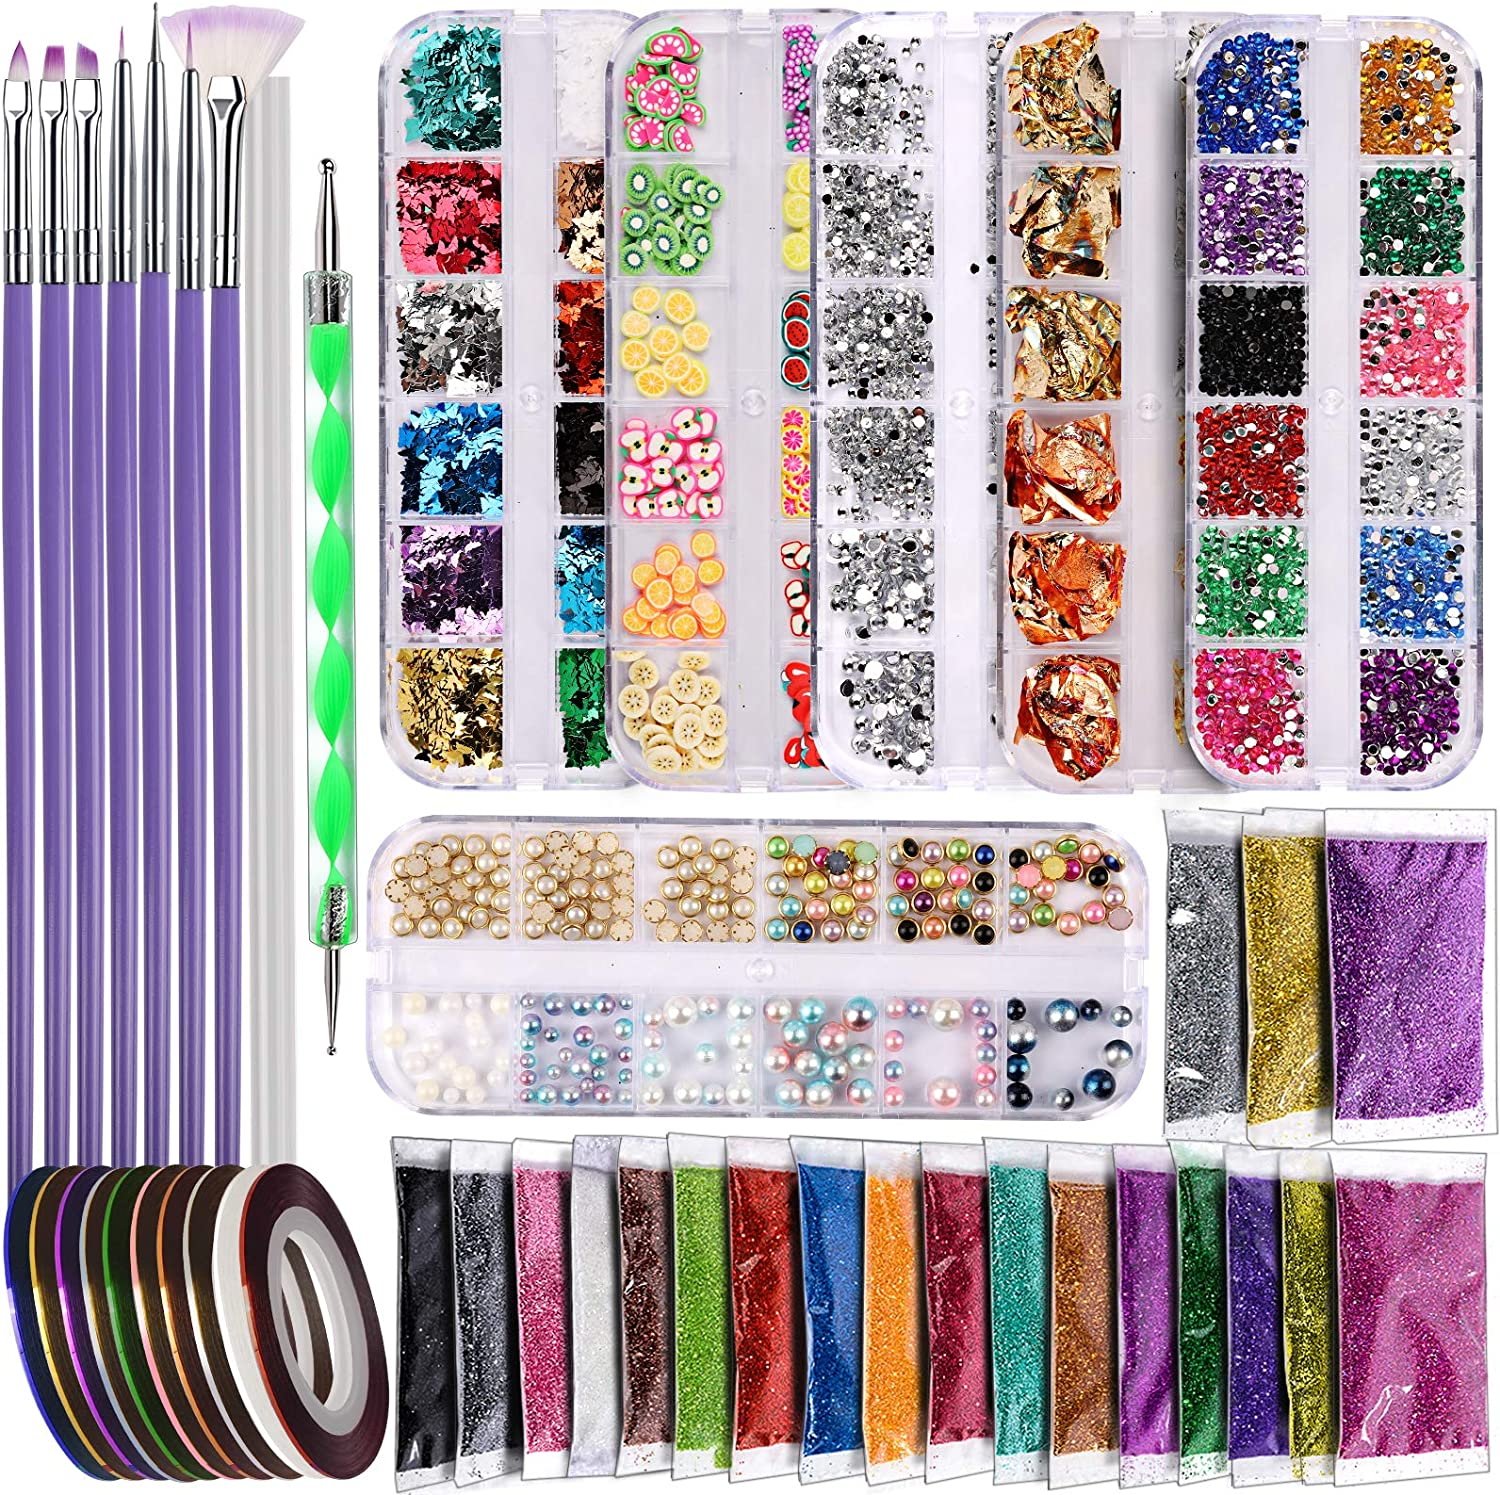 Teenitor Nail Art Decoration Kit with Glitte Inventory cleanup selling sale Design Virginia Beach Mall Brushes